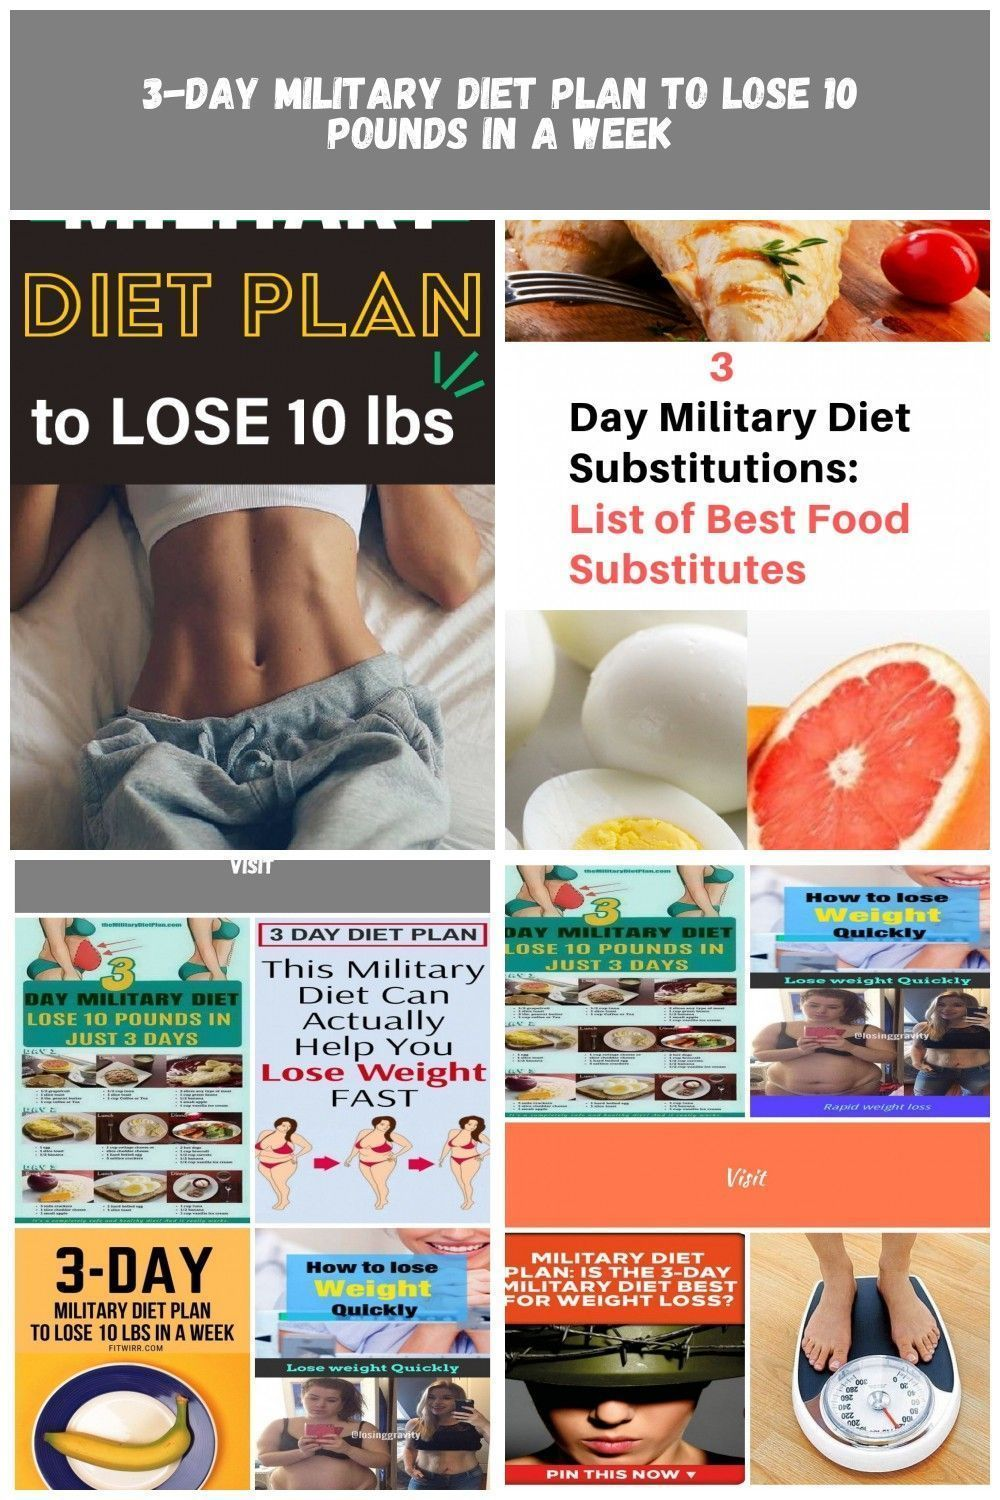 3 day military diet plan 10 pounds 3 day military diet